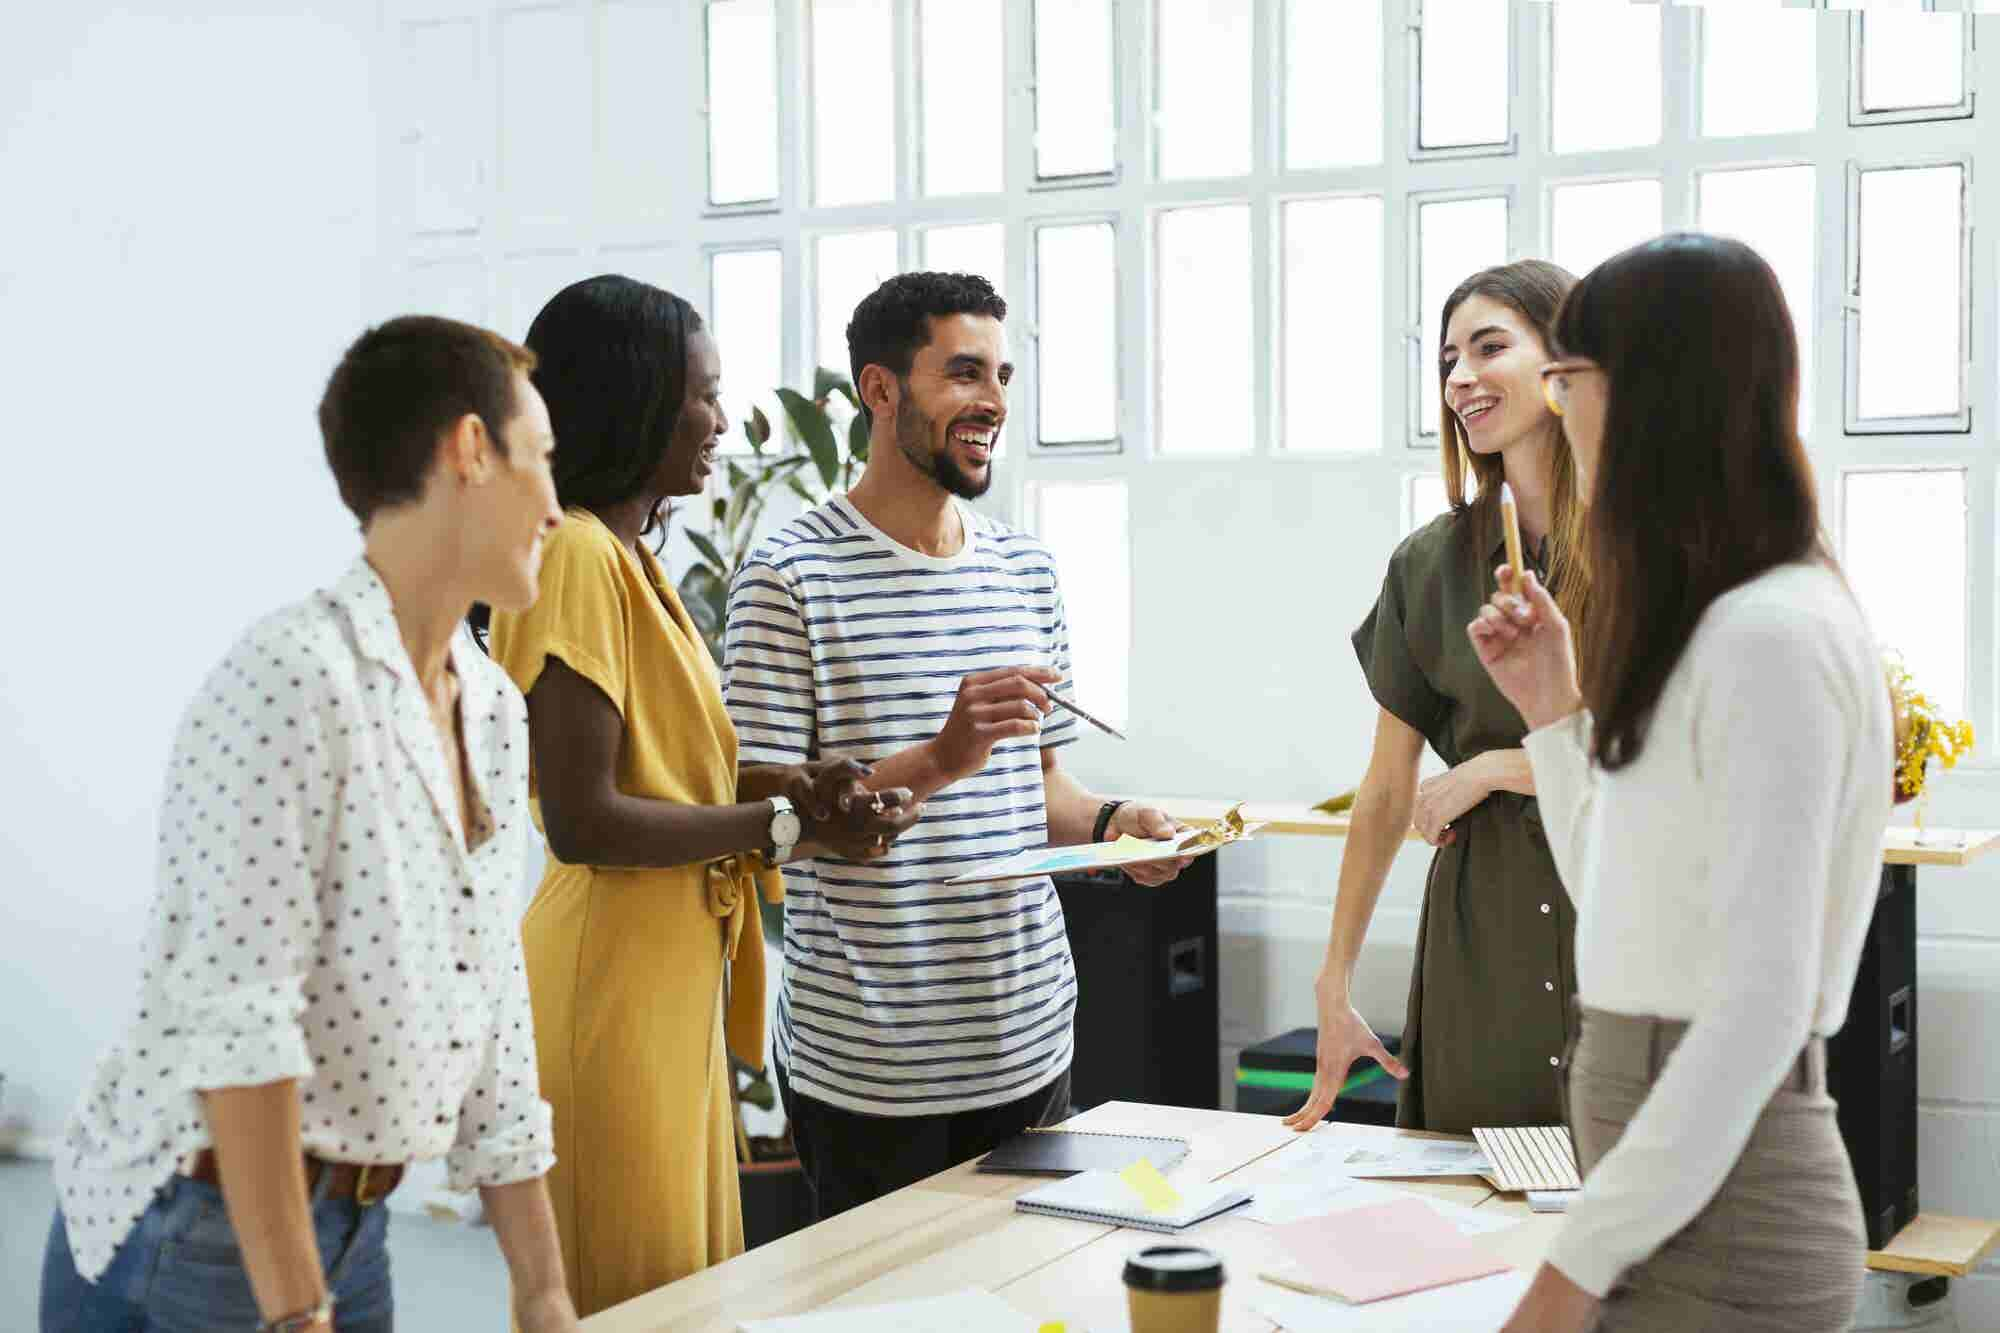 Purpose Is Built, Not Bought: 3 Ways Businesses Can Cultivate It